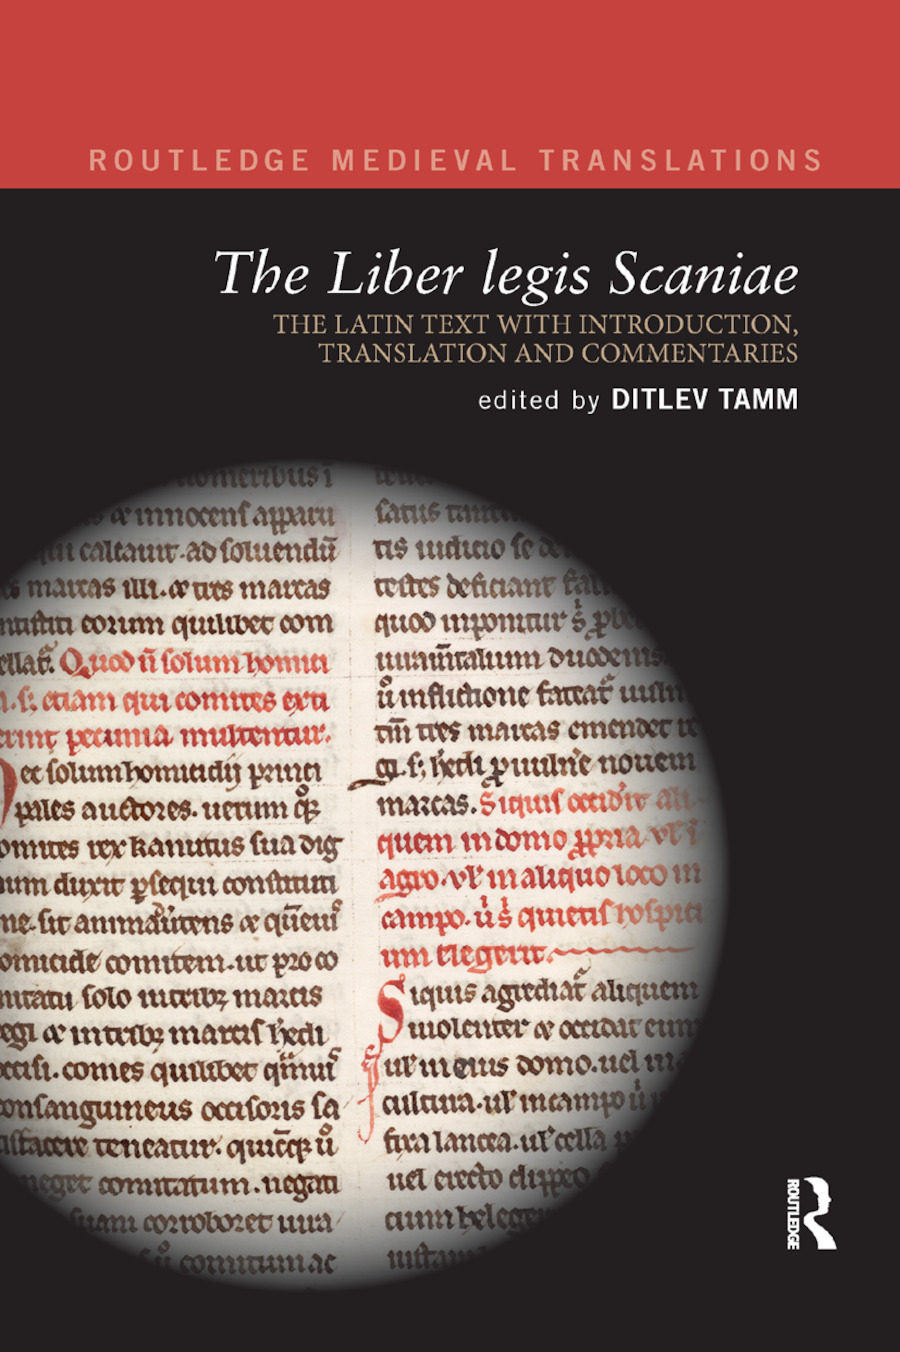 The Liber legis Scaniae: The Latin Text with Introduction, Translation and Commentaries book cover